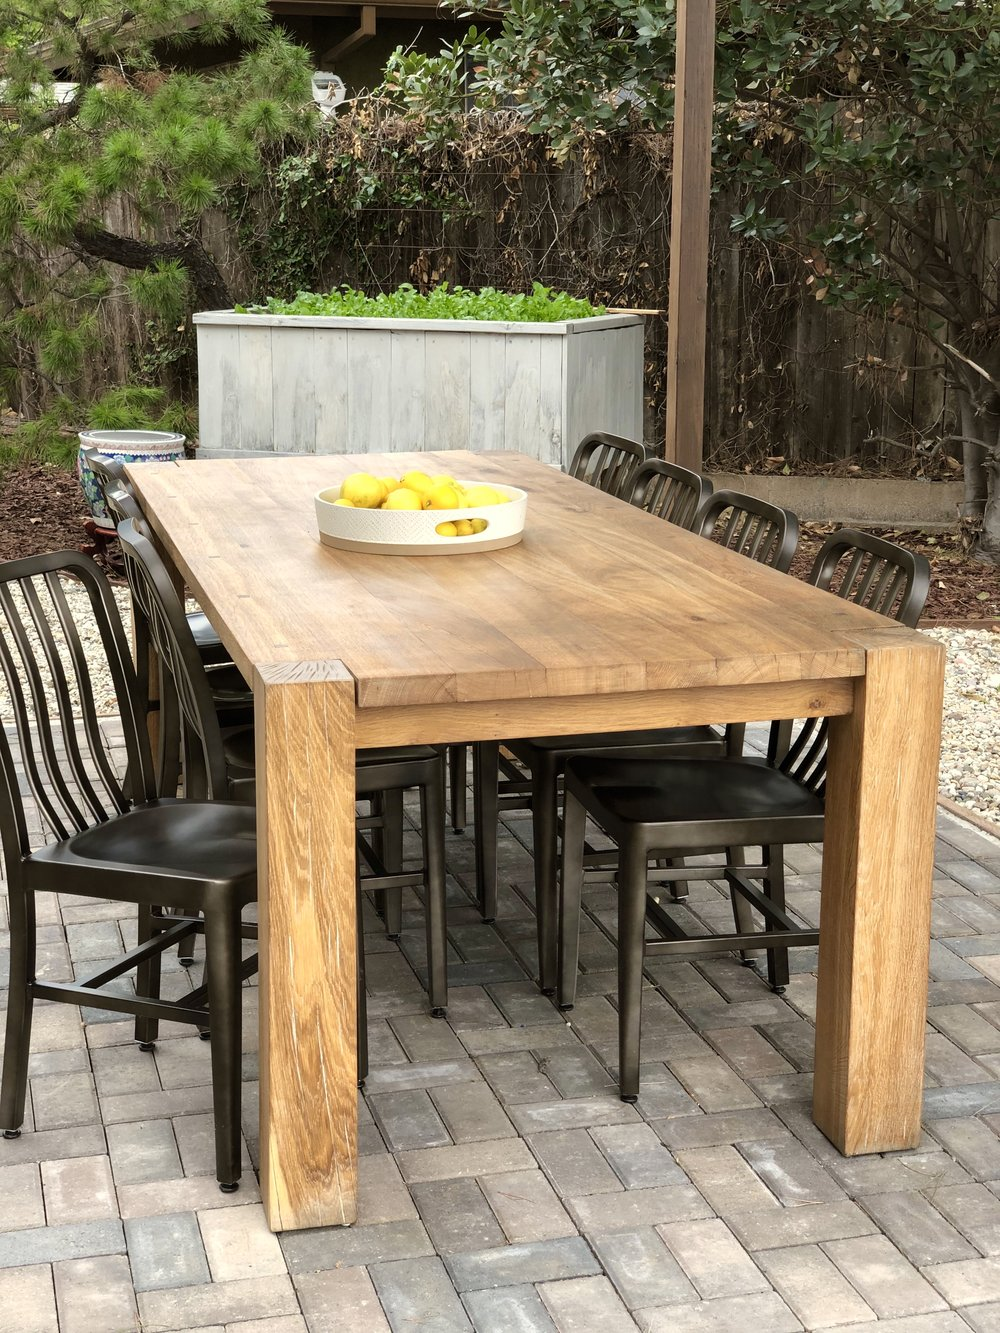 Our 10-seat dining table was the luckiest of lucky finds. Crate & Barrel's Big Sur oak table retails for $1900 but we found one at an estate sale for only $300. I refinished it with Epifanes Matte Wood Finish, which is an incredible marine strength coating that transformed this indoor piece into an outdoor one.